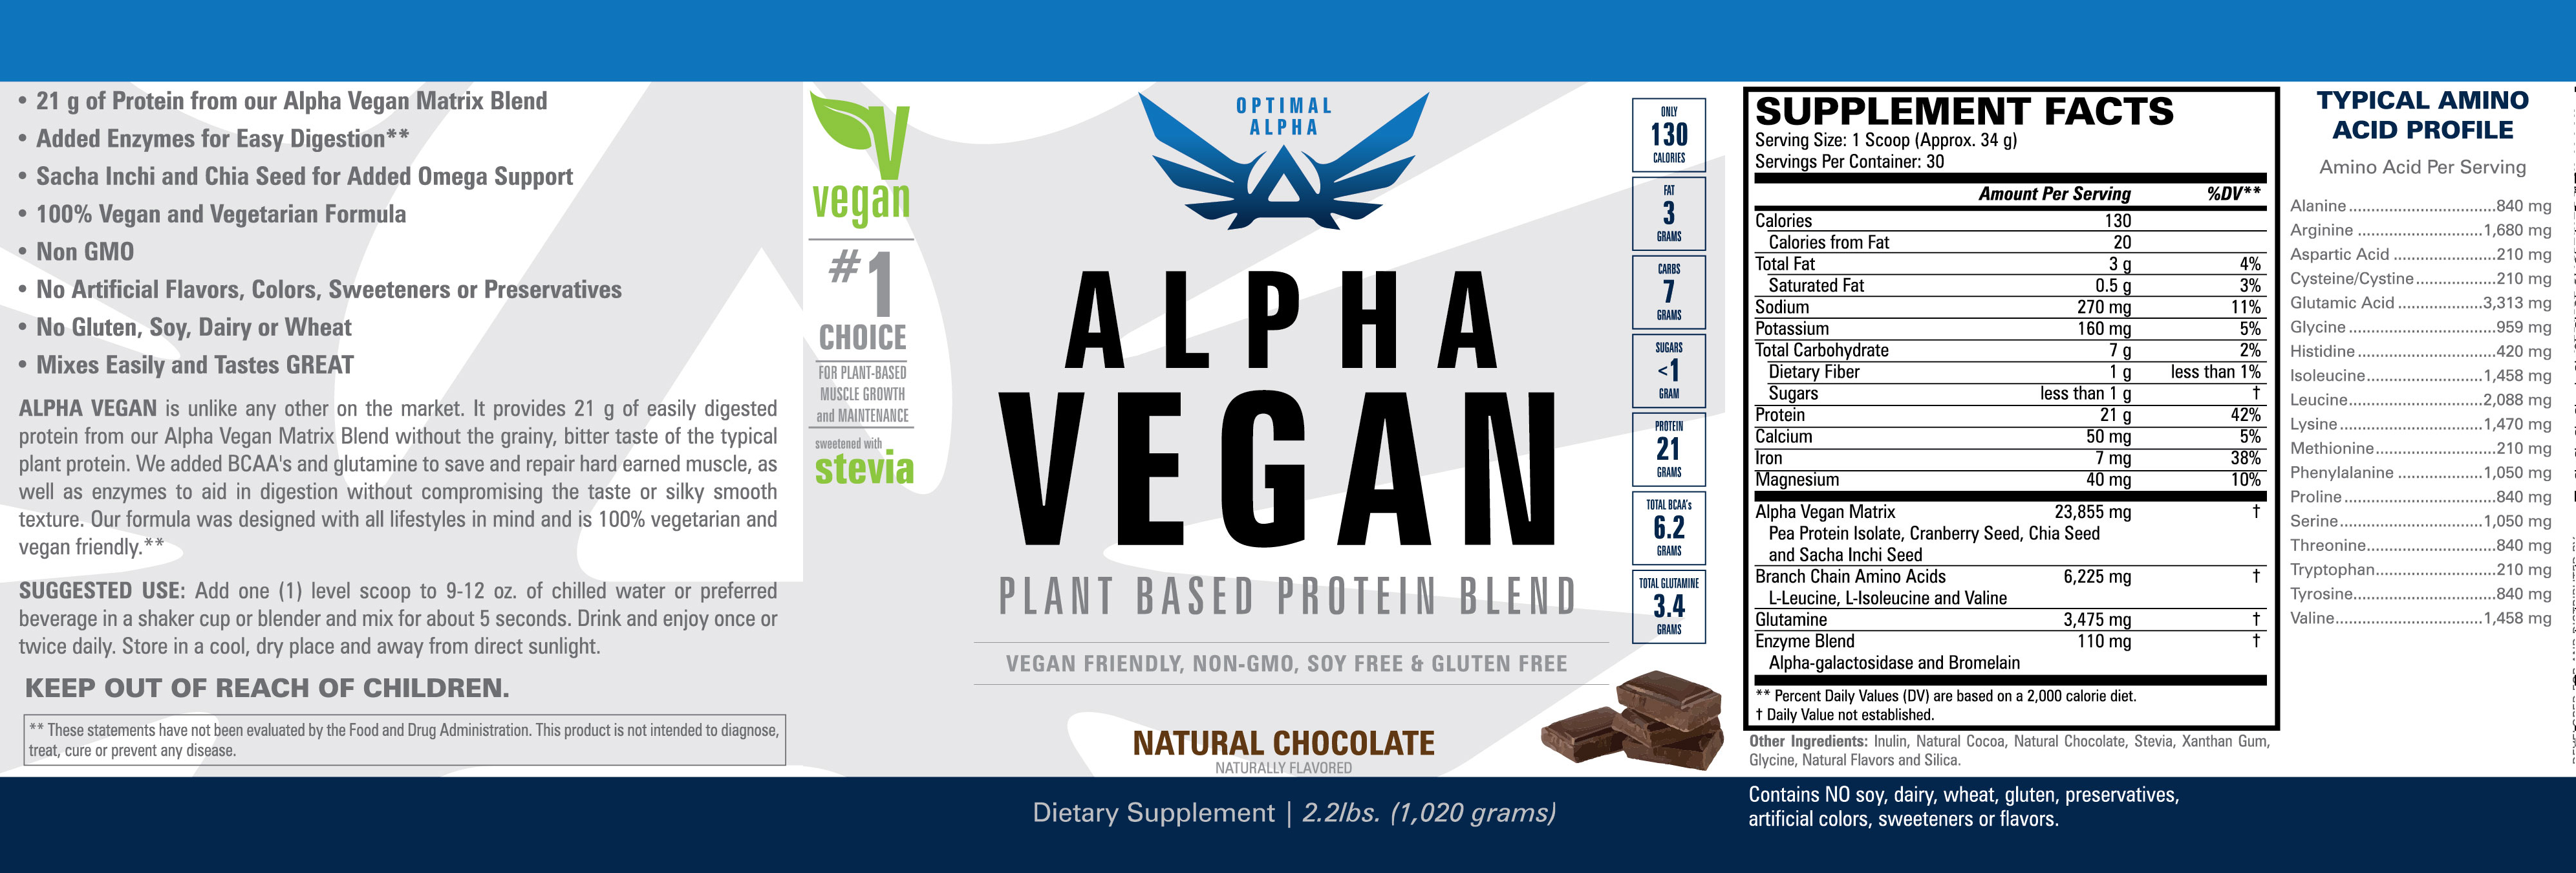 alpha-vegan-pro-choco-slim-label.jpg